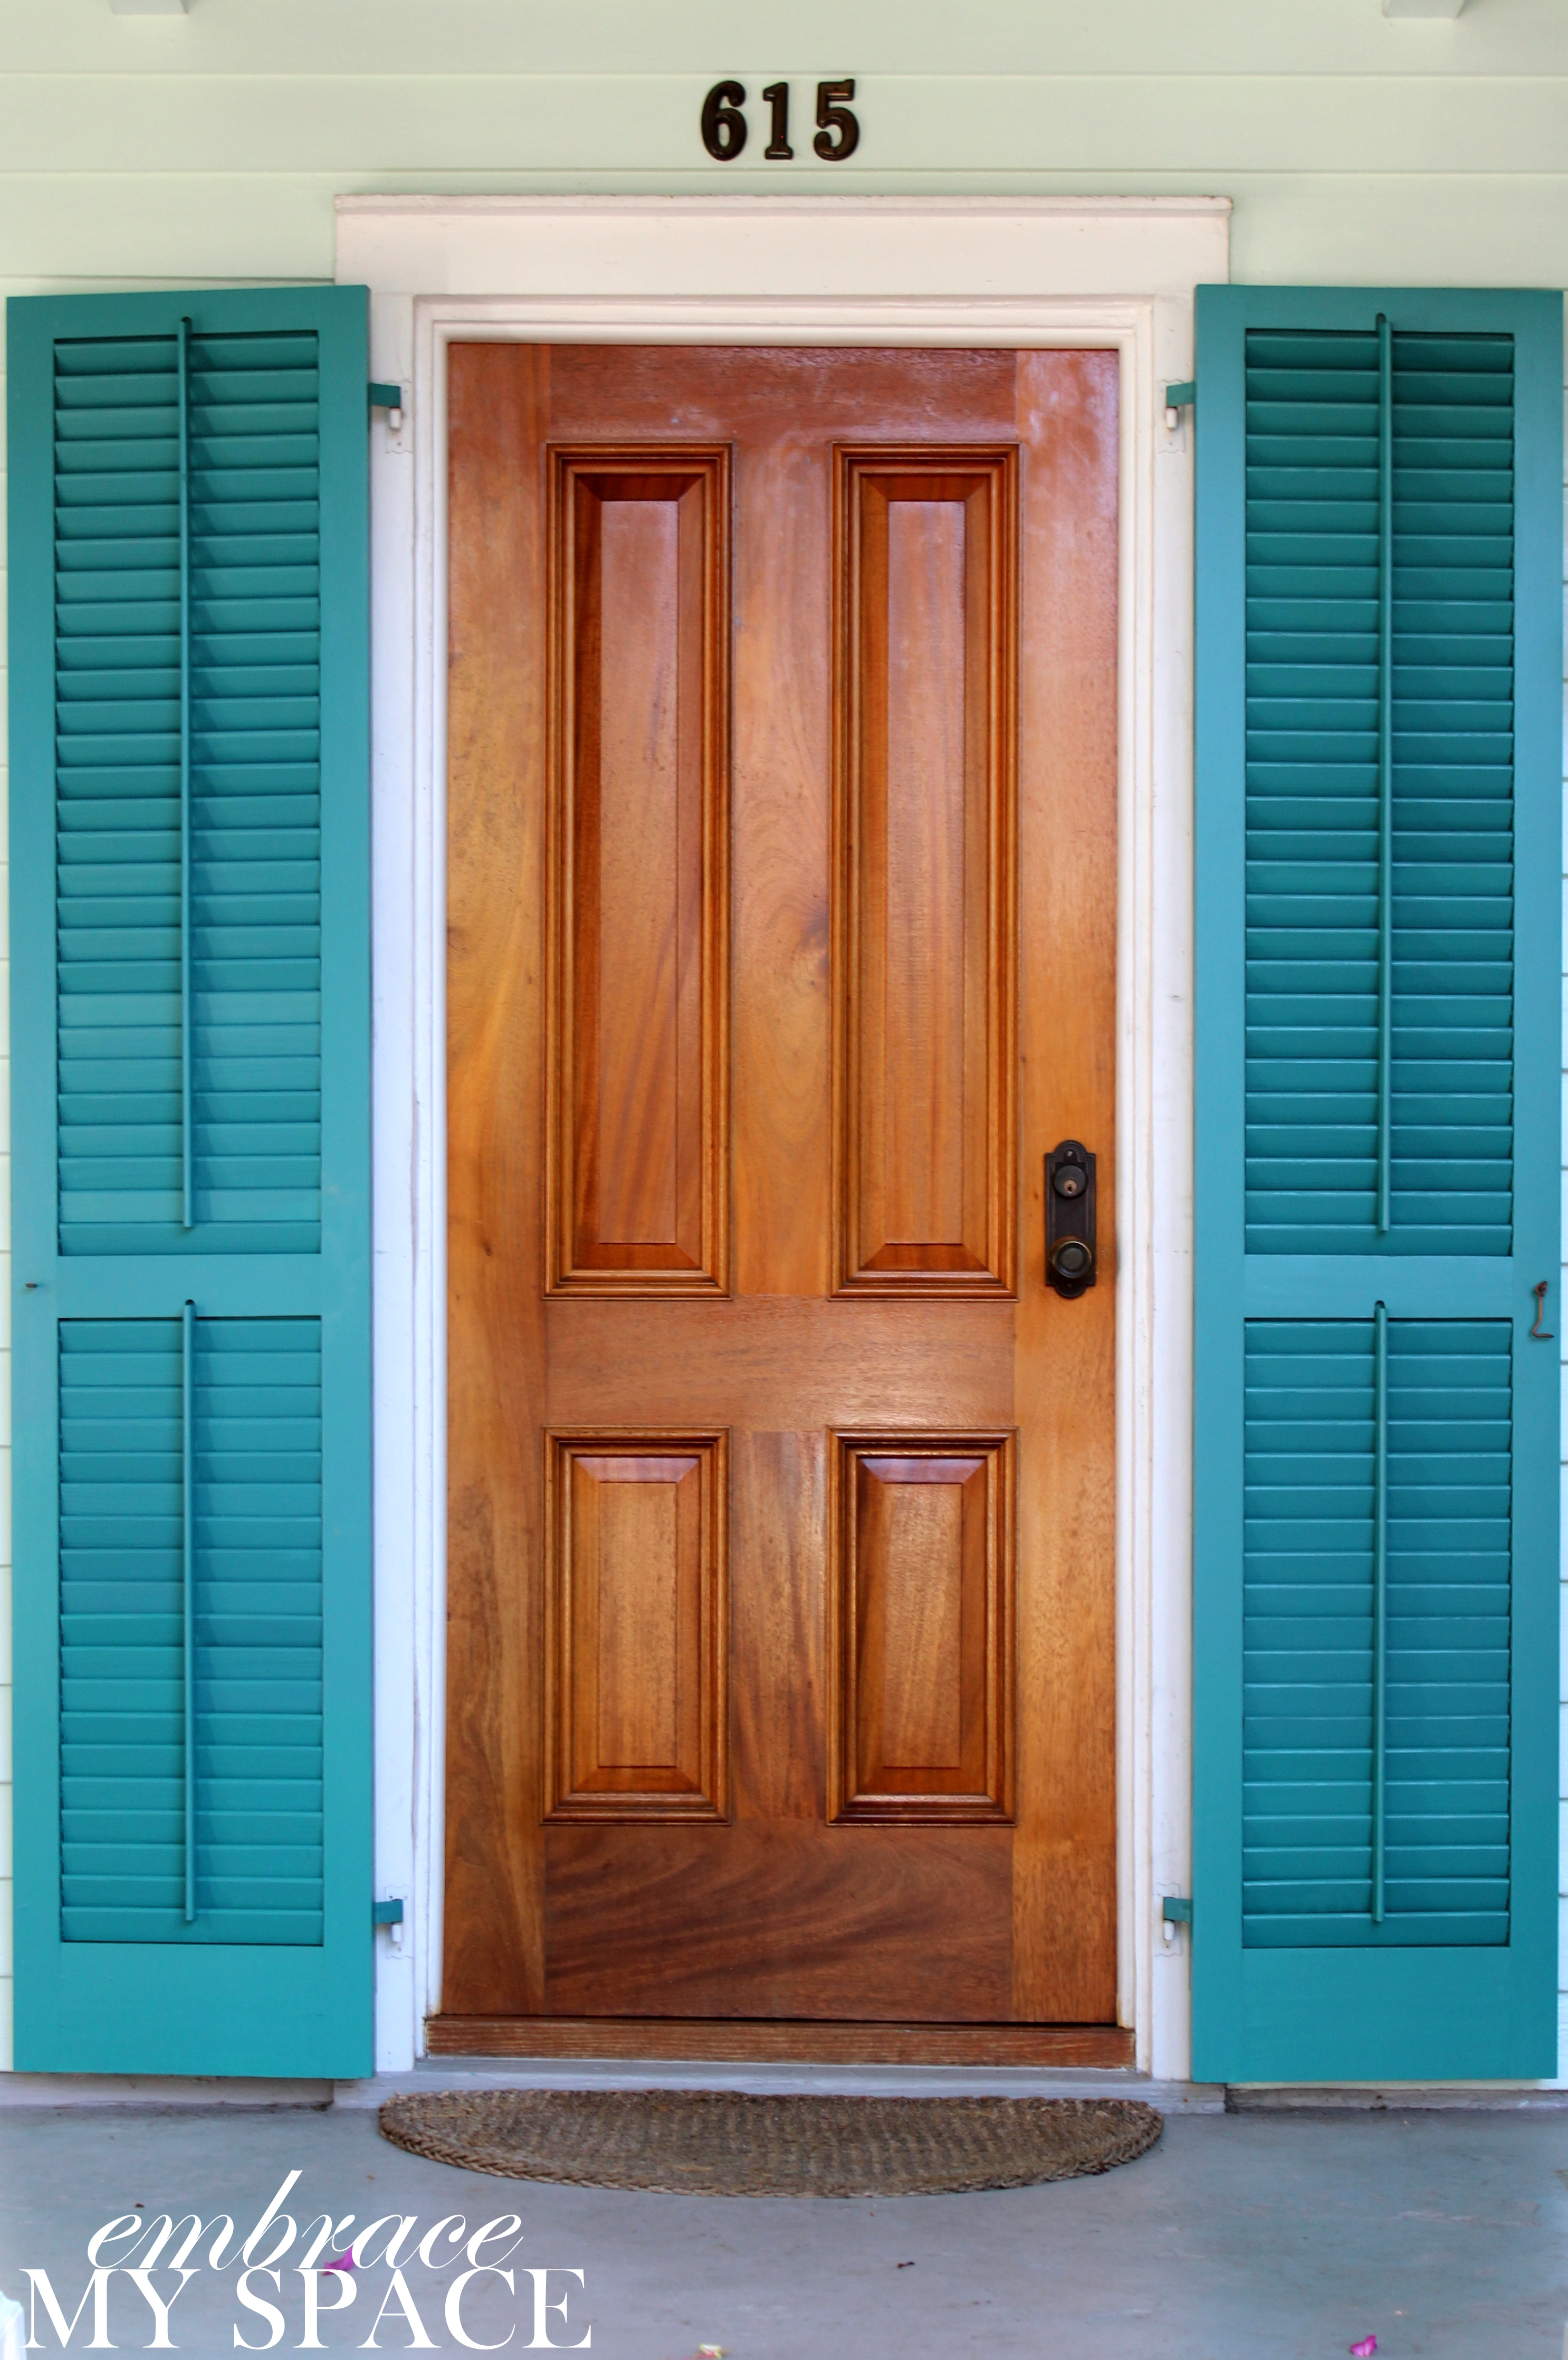 DOOR: Many Key West homes have storm shutters on the windows and doors